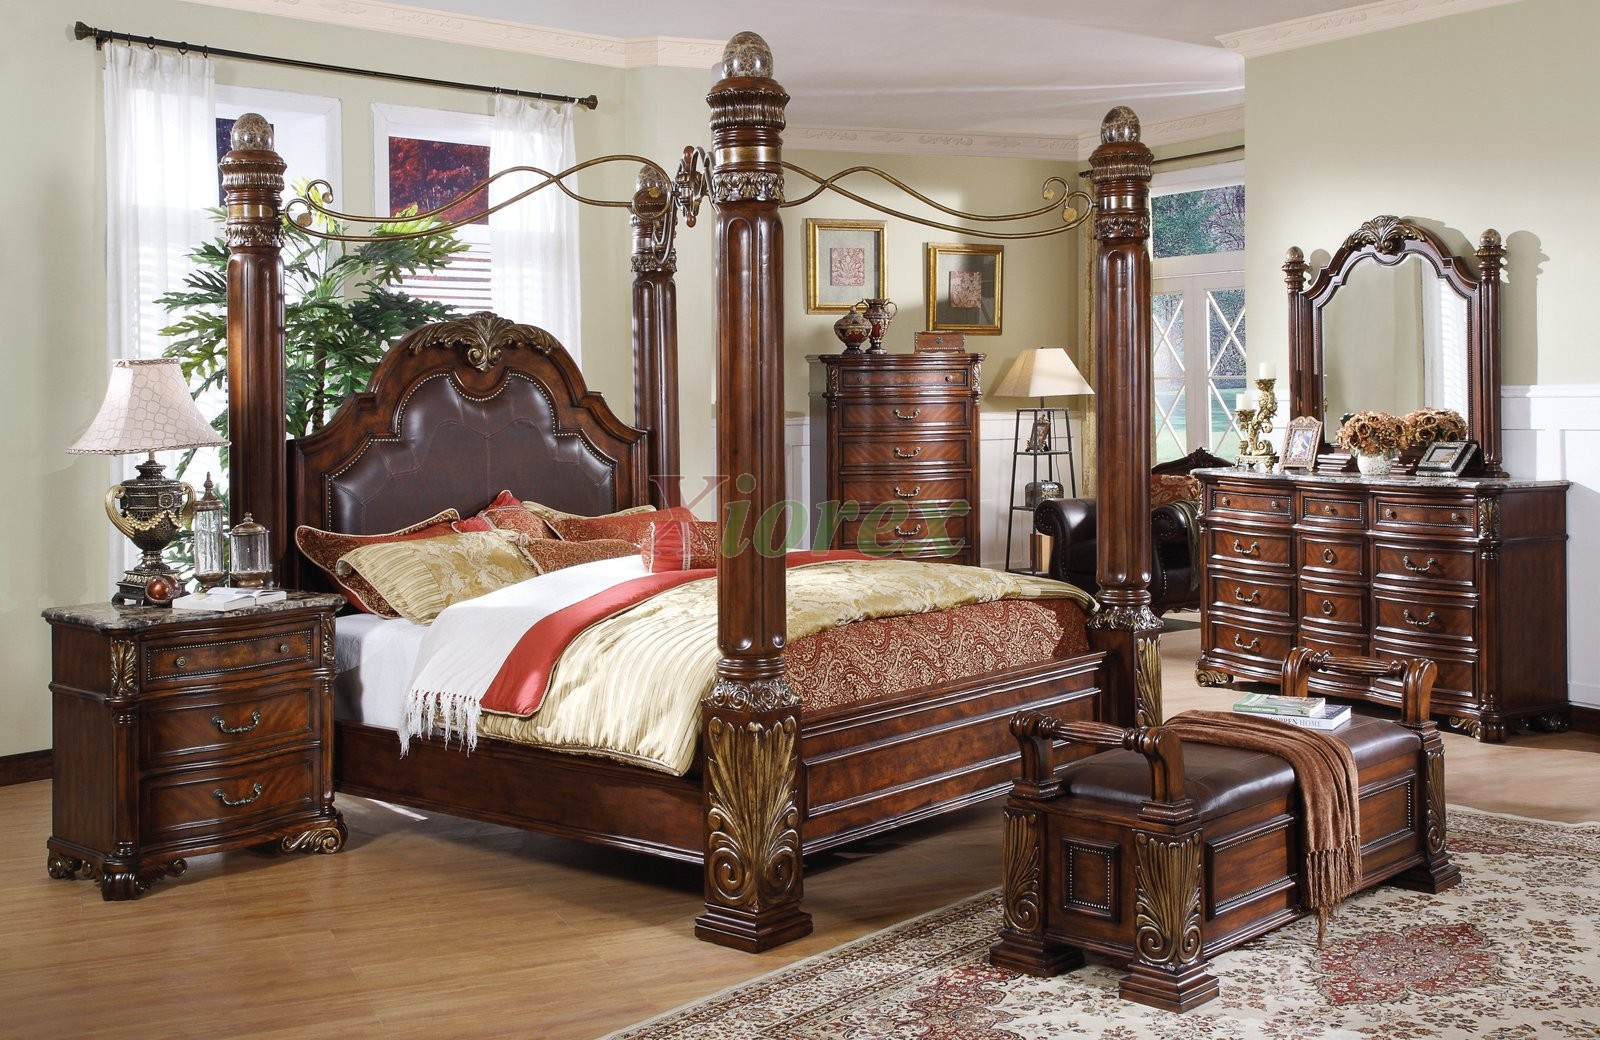 Furniture Set living room picture bedroom design